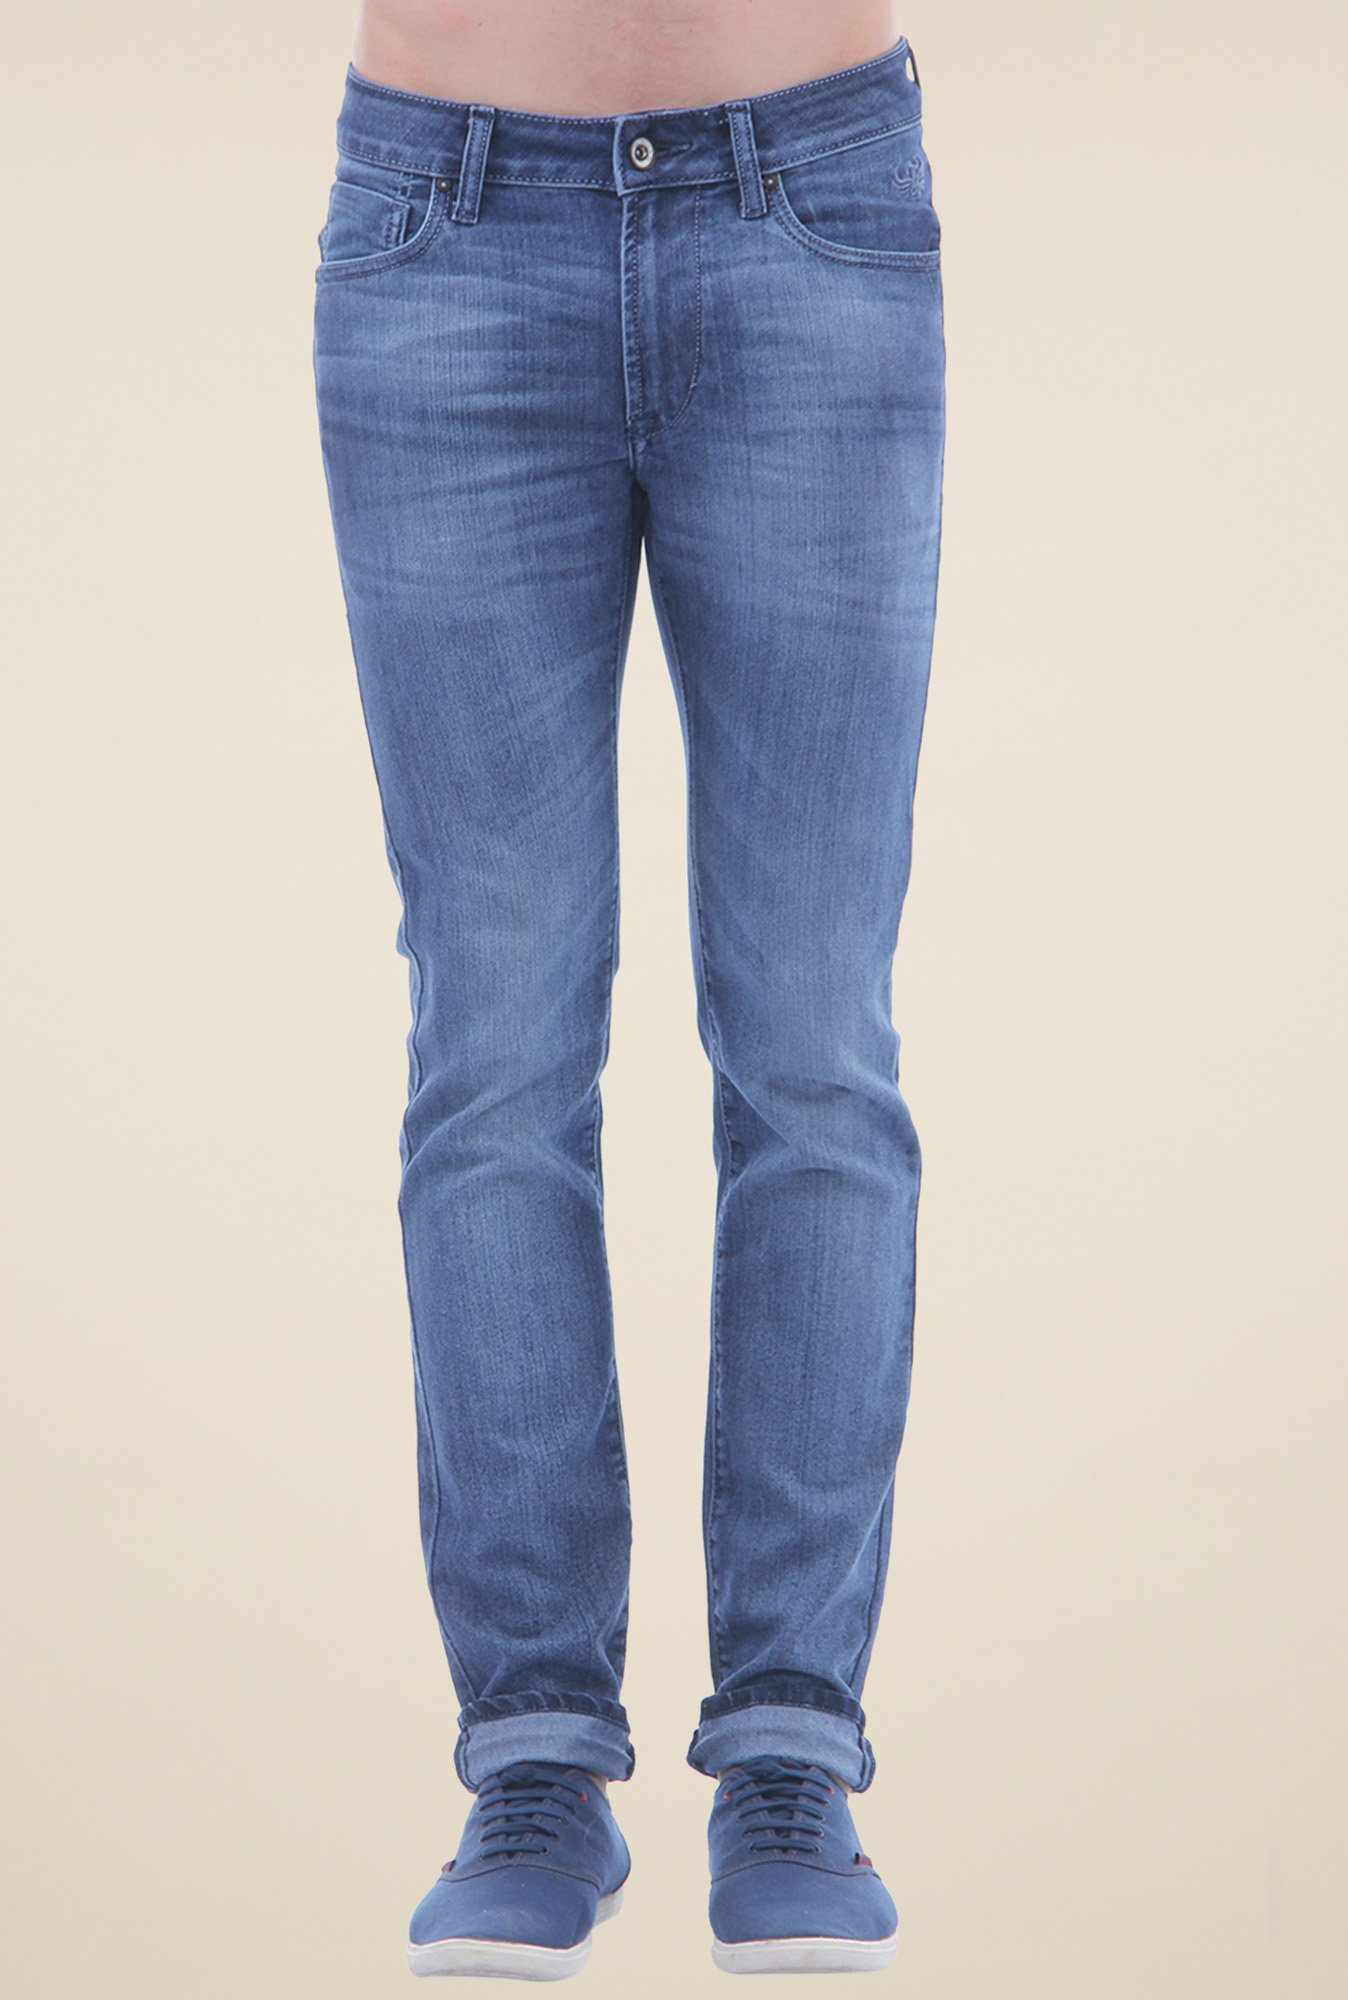 Flying Machine Blue Low Rise Jeans